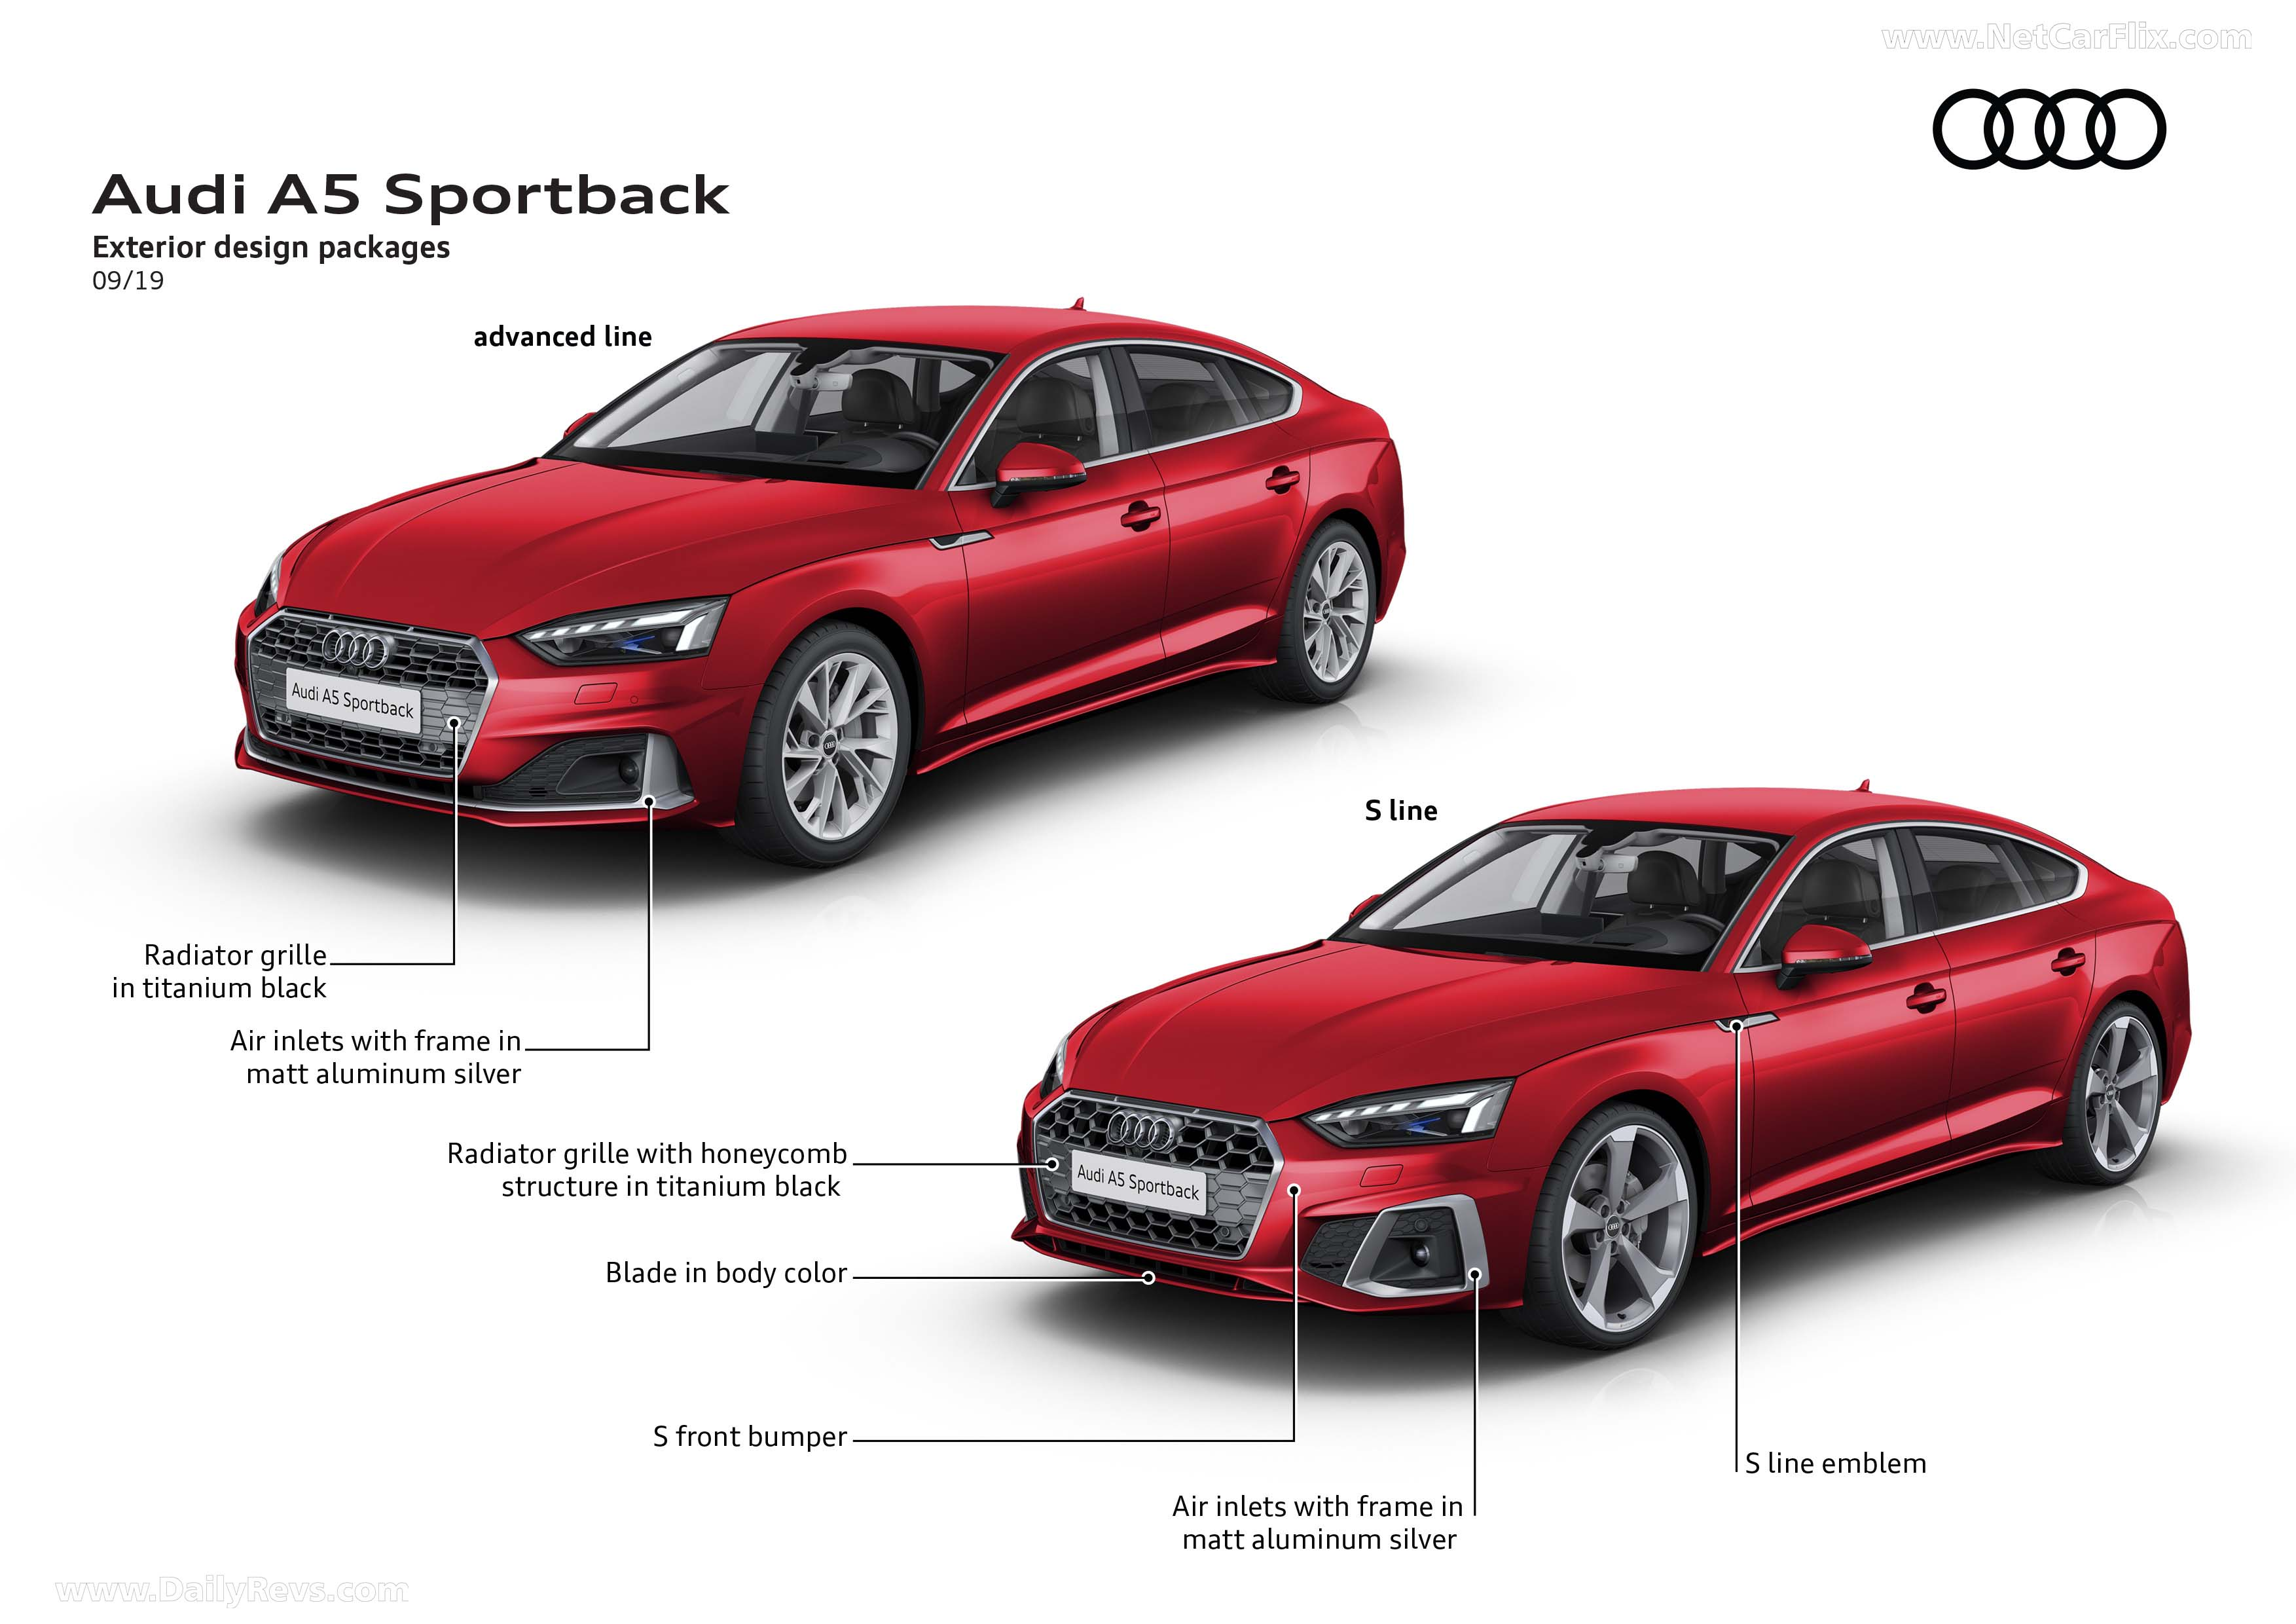 2020 Audi A5 Sportback - Pictures, Images & Wallpapers ...